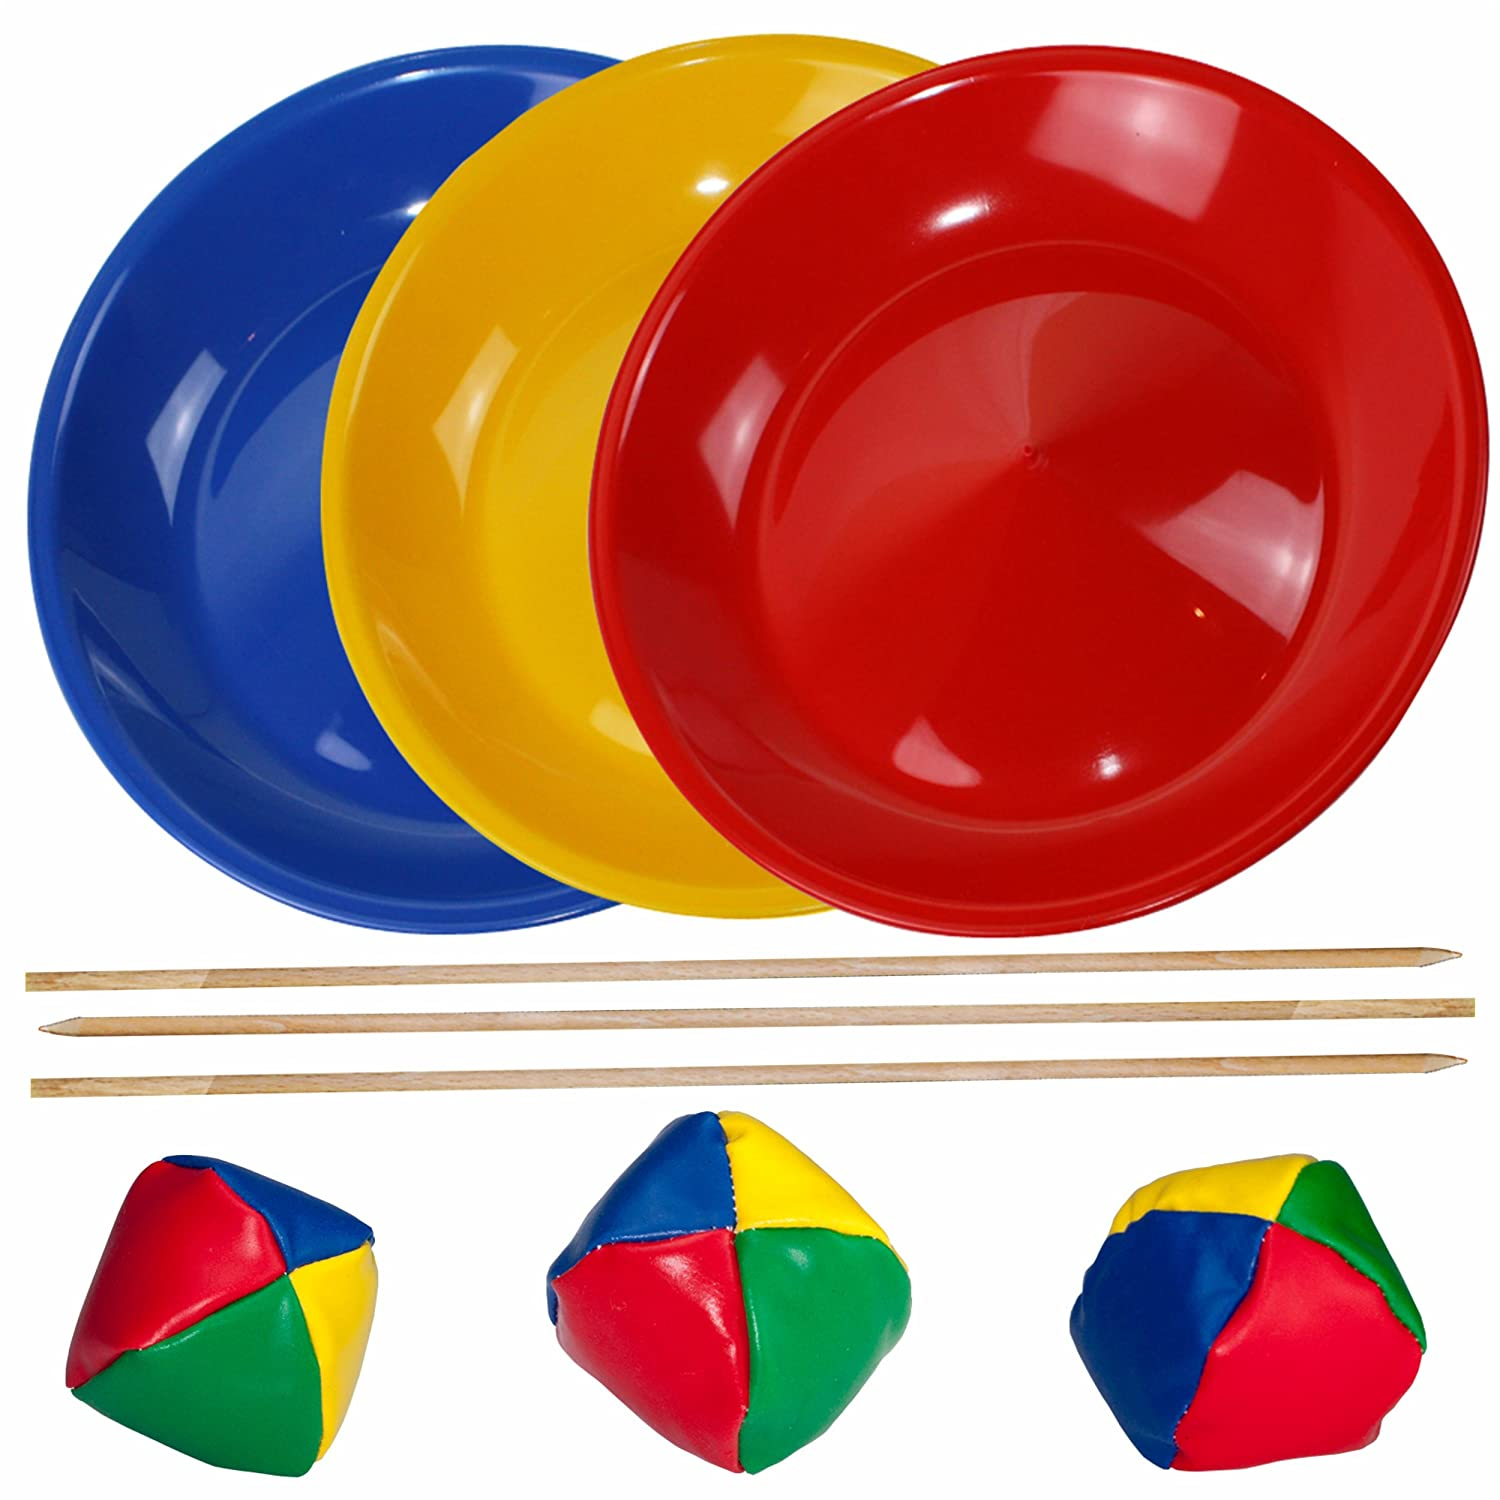 SchwabMarken Juggling Set 3 Spinning Juggling Plates with 3 Wooden Sticks and 3 Juggling Balls Mixed Colours